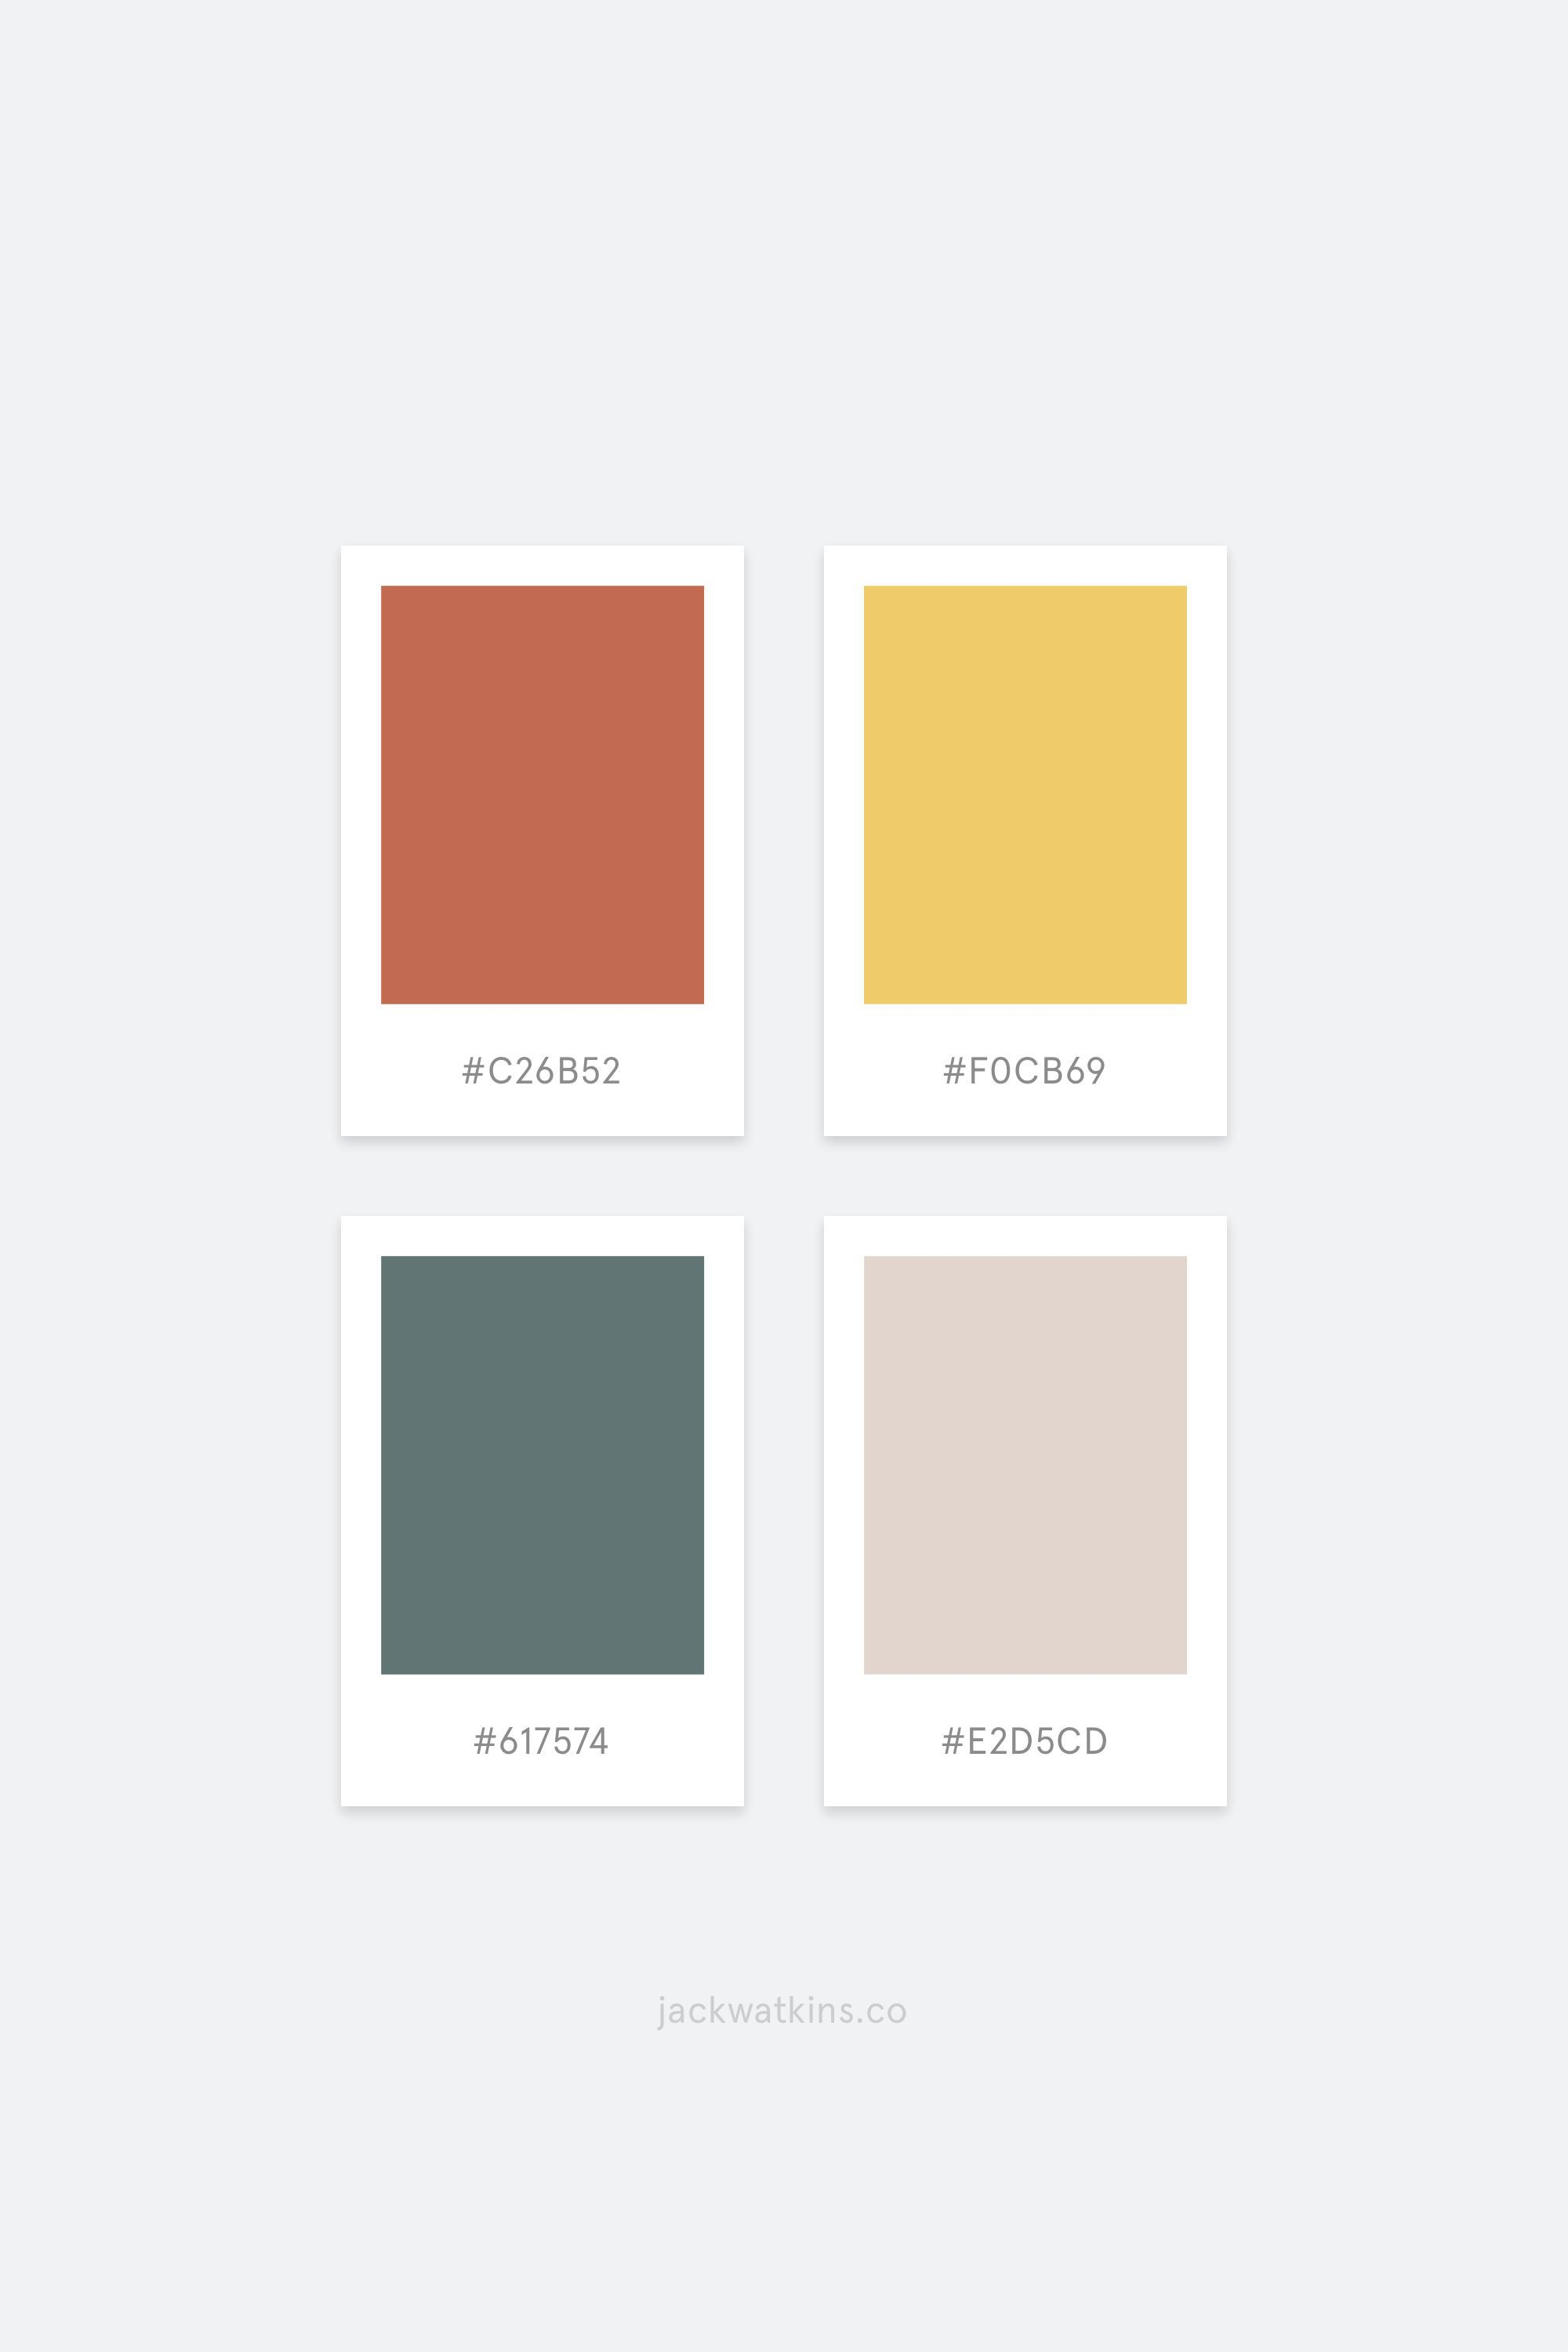 Muted Colourful Simple Colour Palette Curated By Jack Watkins A Branding And Website Designer For Vis Em 2020 Amostras De Cores Inspiração De Cores Cores De Parede